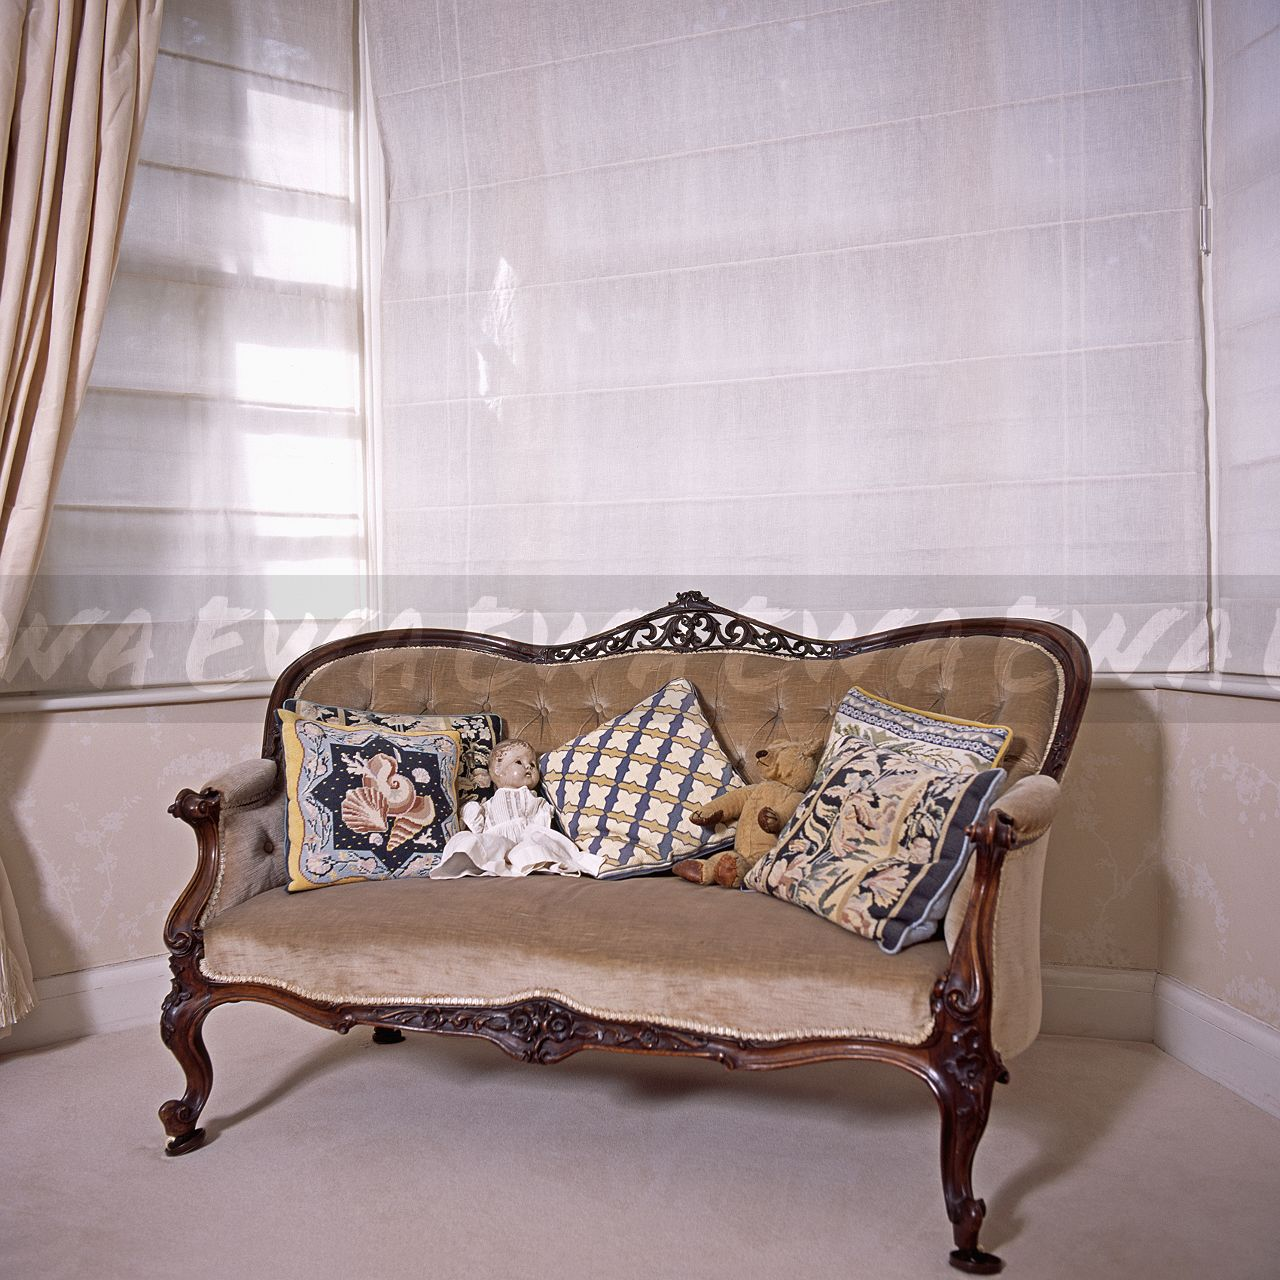 Antique Tapestry Sofa: Image: Tapestry Cushions And Vintage Doll On Beige Velour